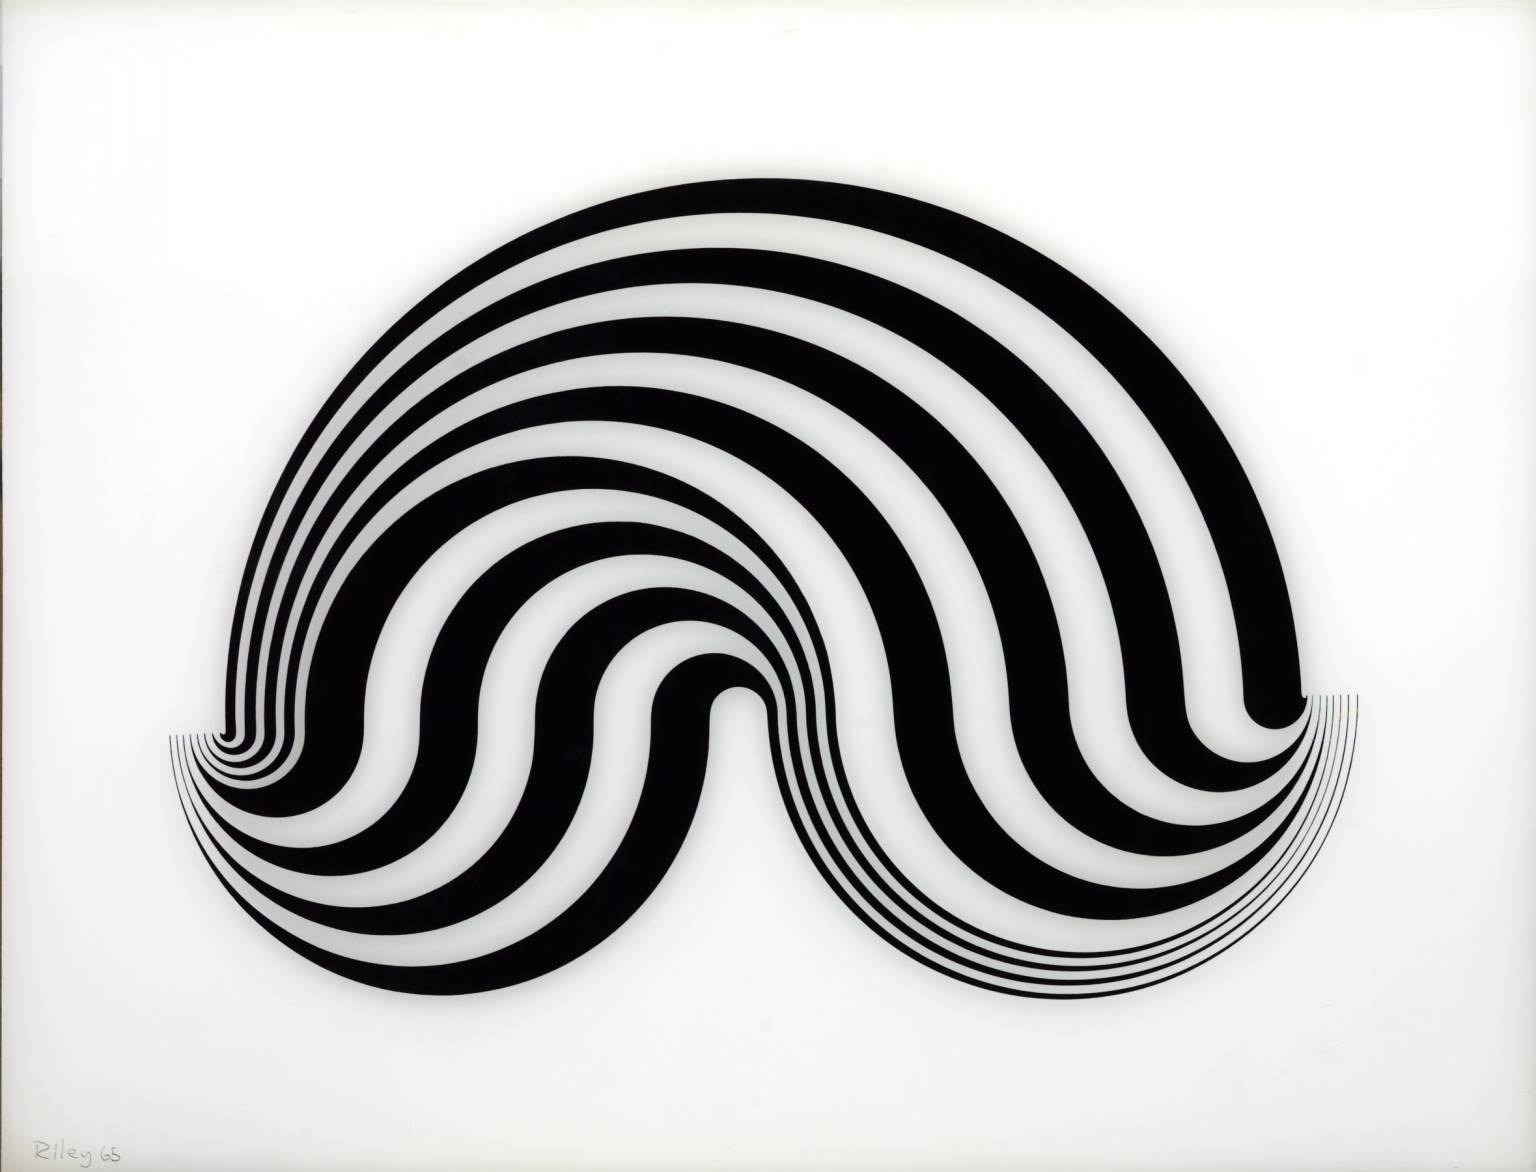 The Work of Bridget Riley: Juxtapoz-BridgetRiley19.jpg